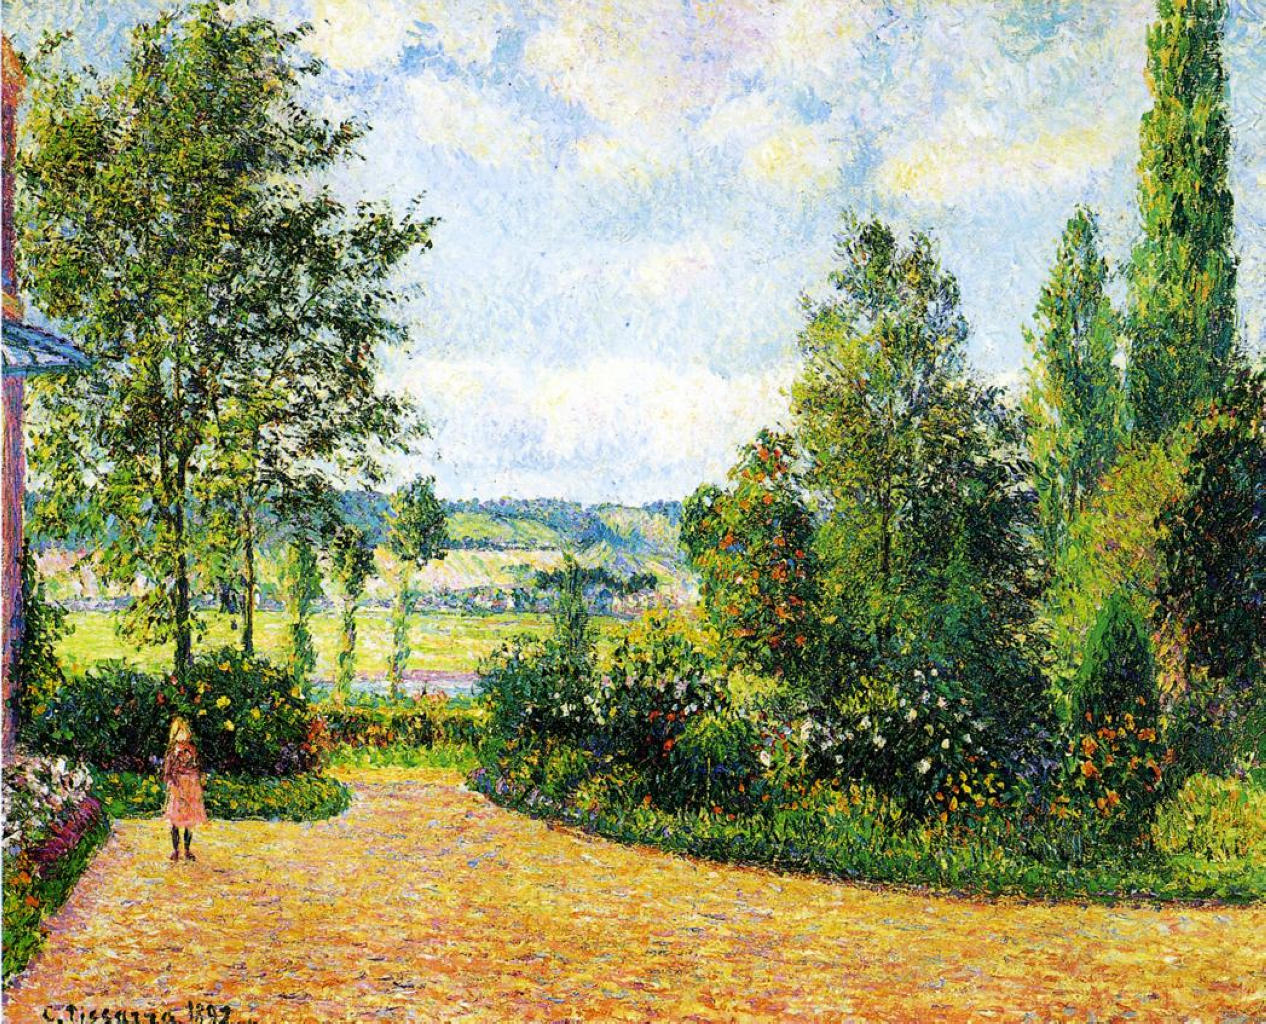 Mirbeau's Garden, the Terrace by Camille Pissarro, 1892